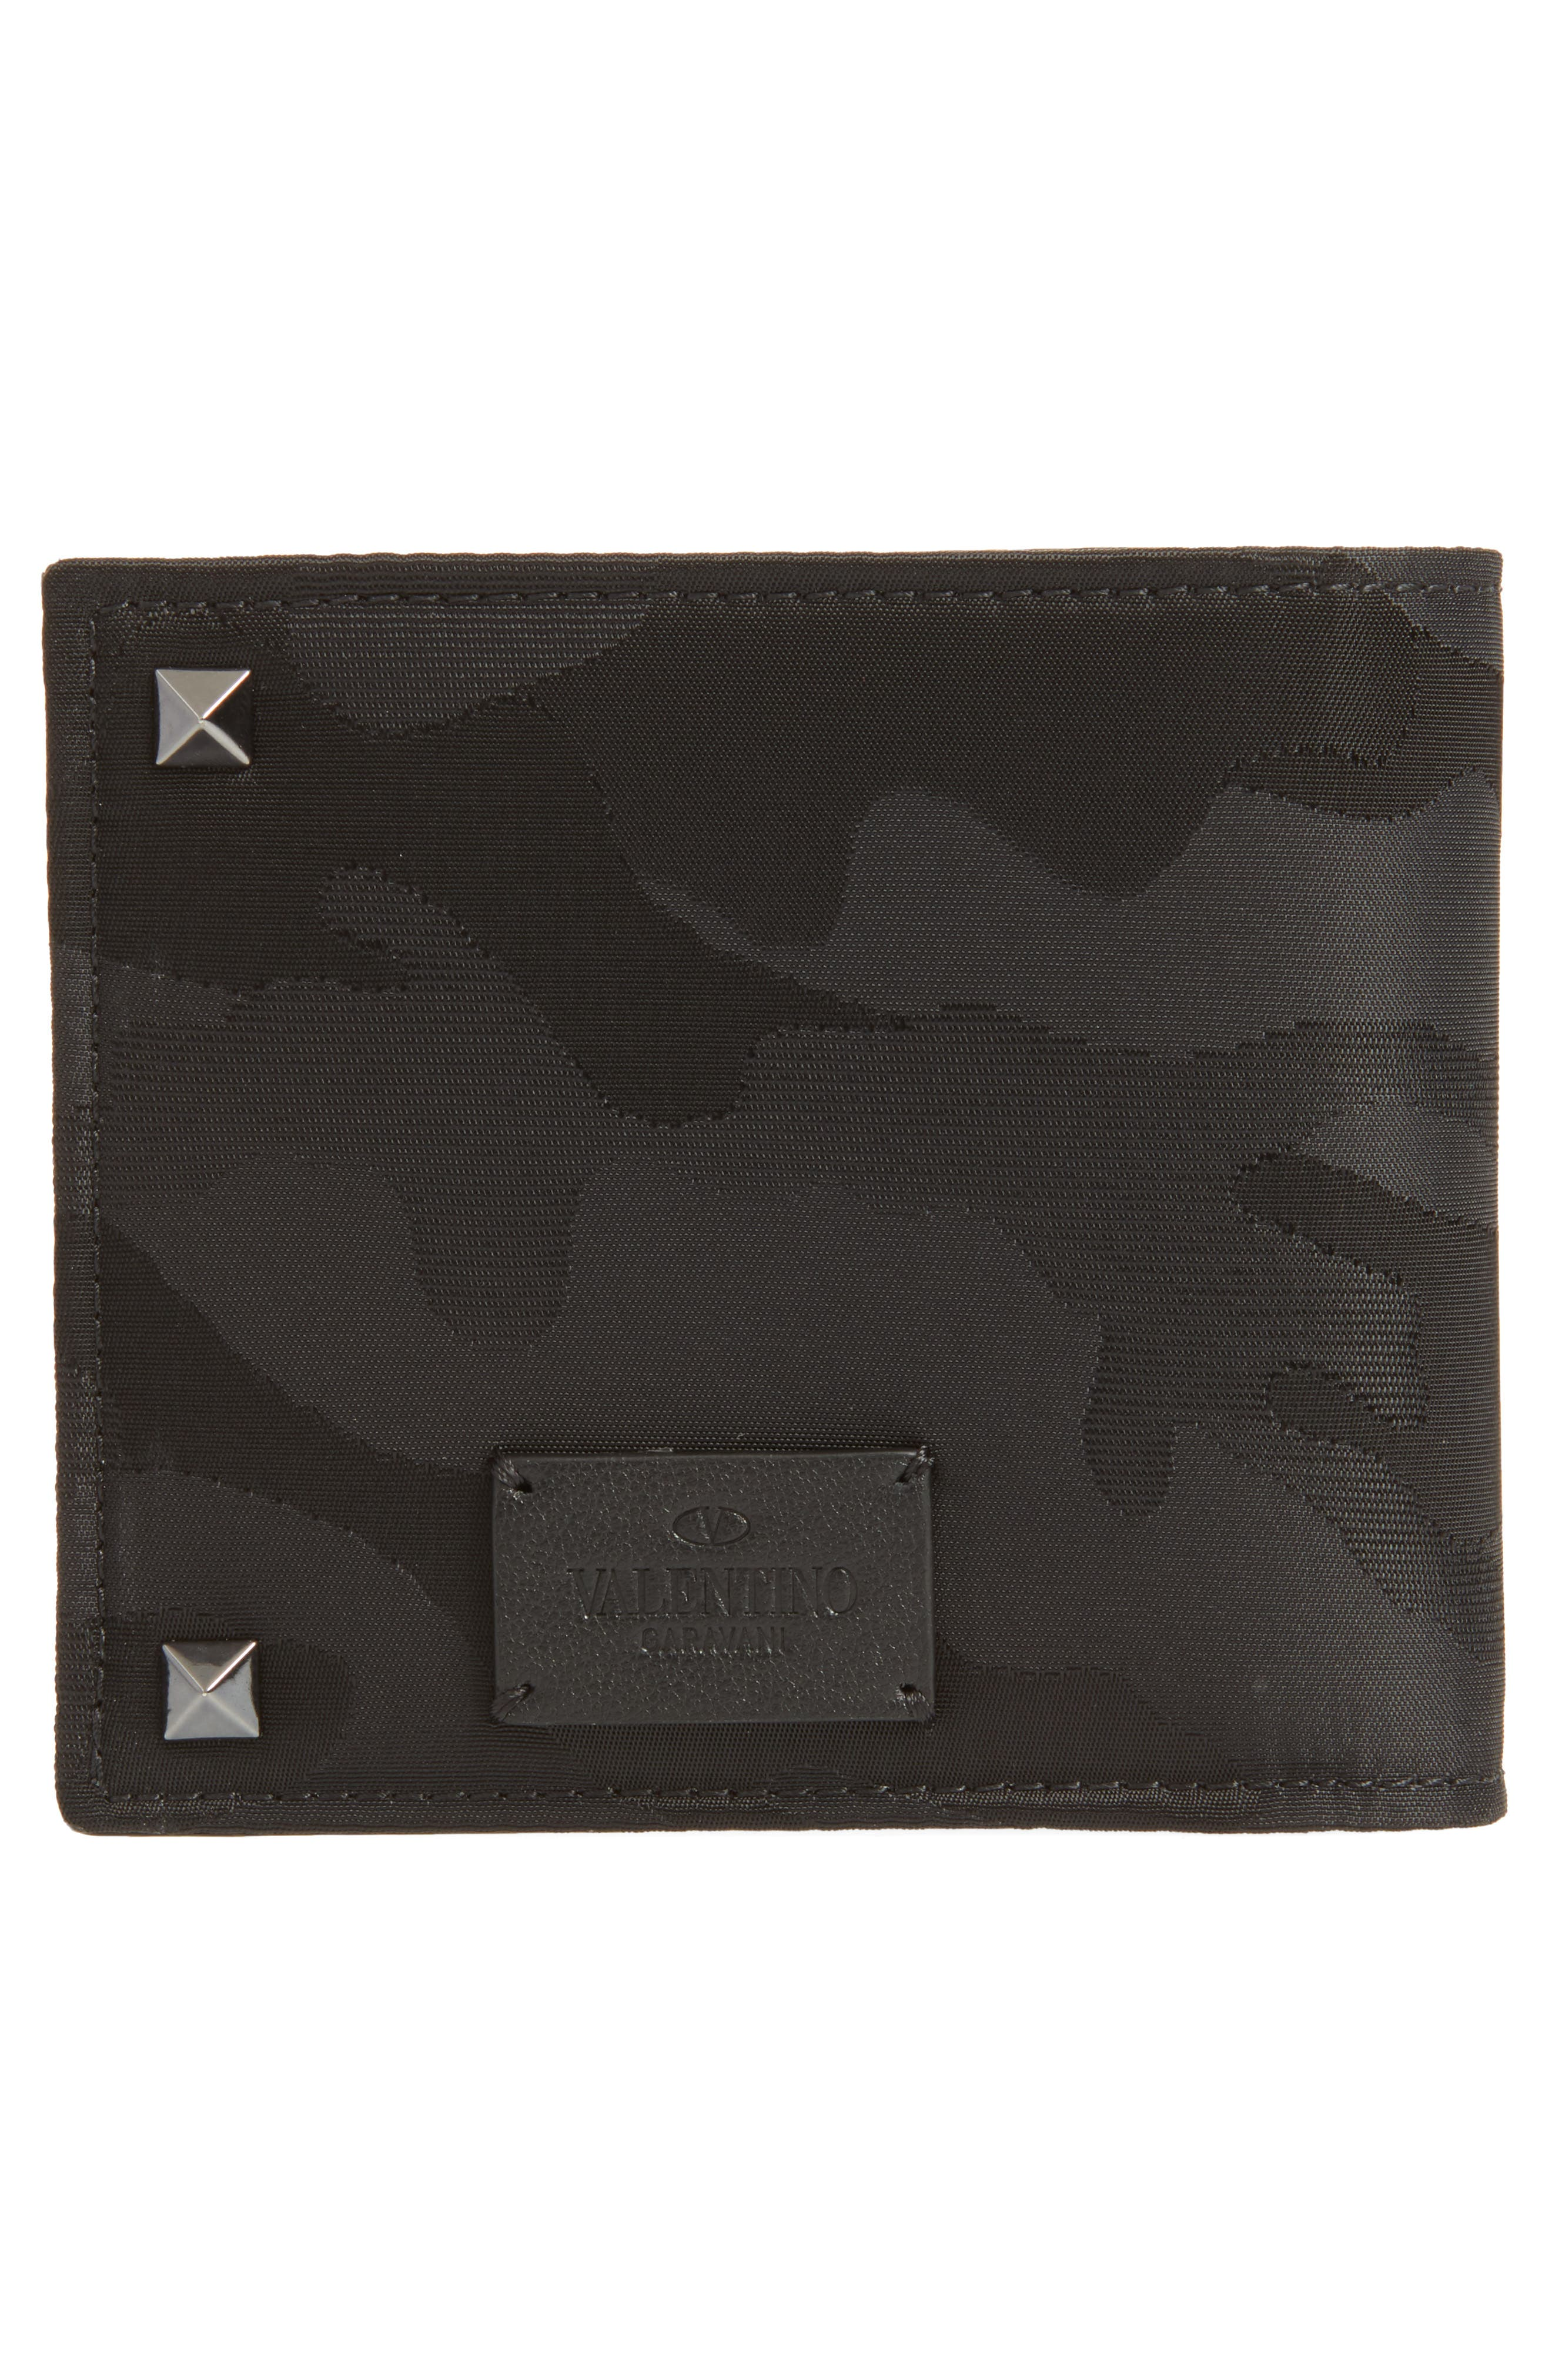 GARAVANI Camo Wallet,                             Alternate thumbnail 3, color,                             001